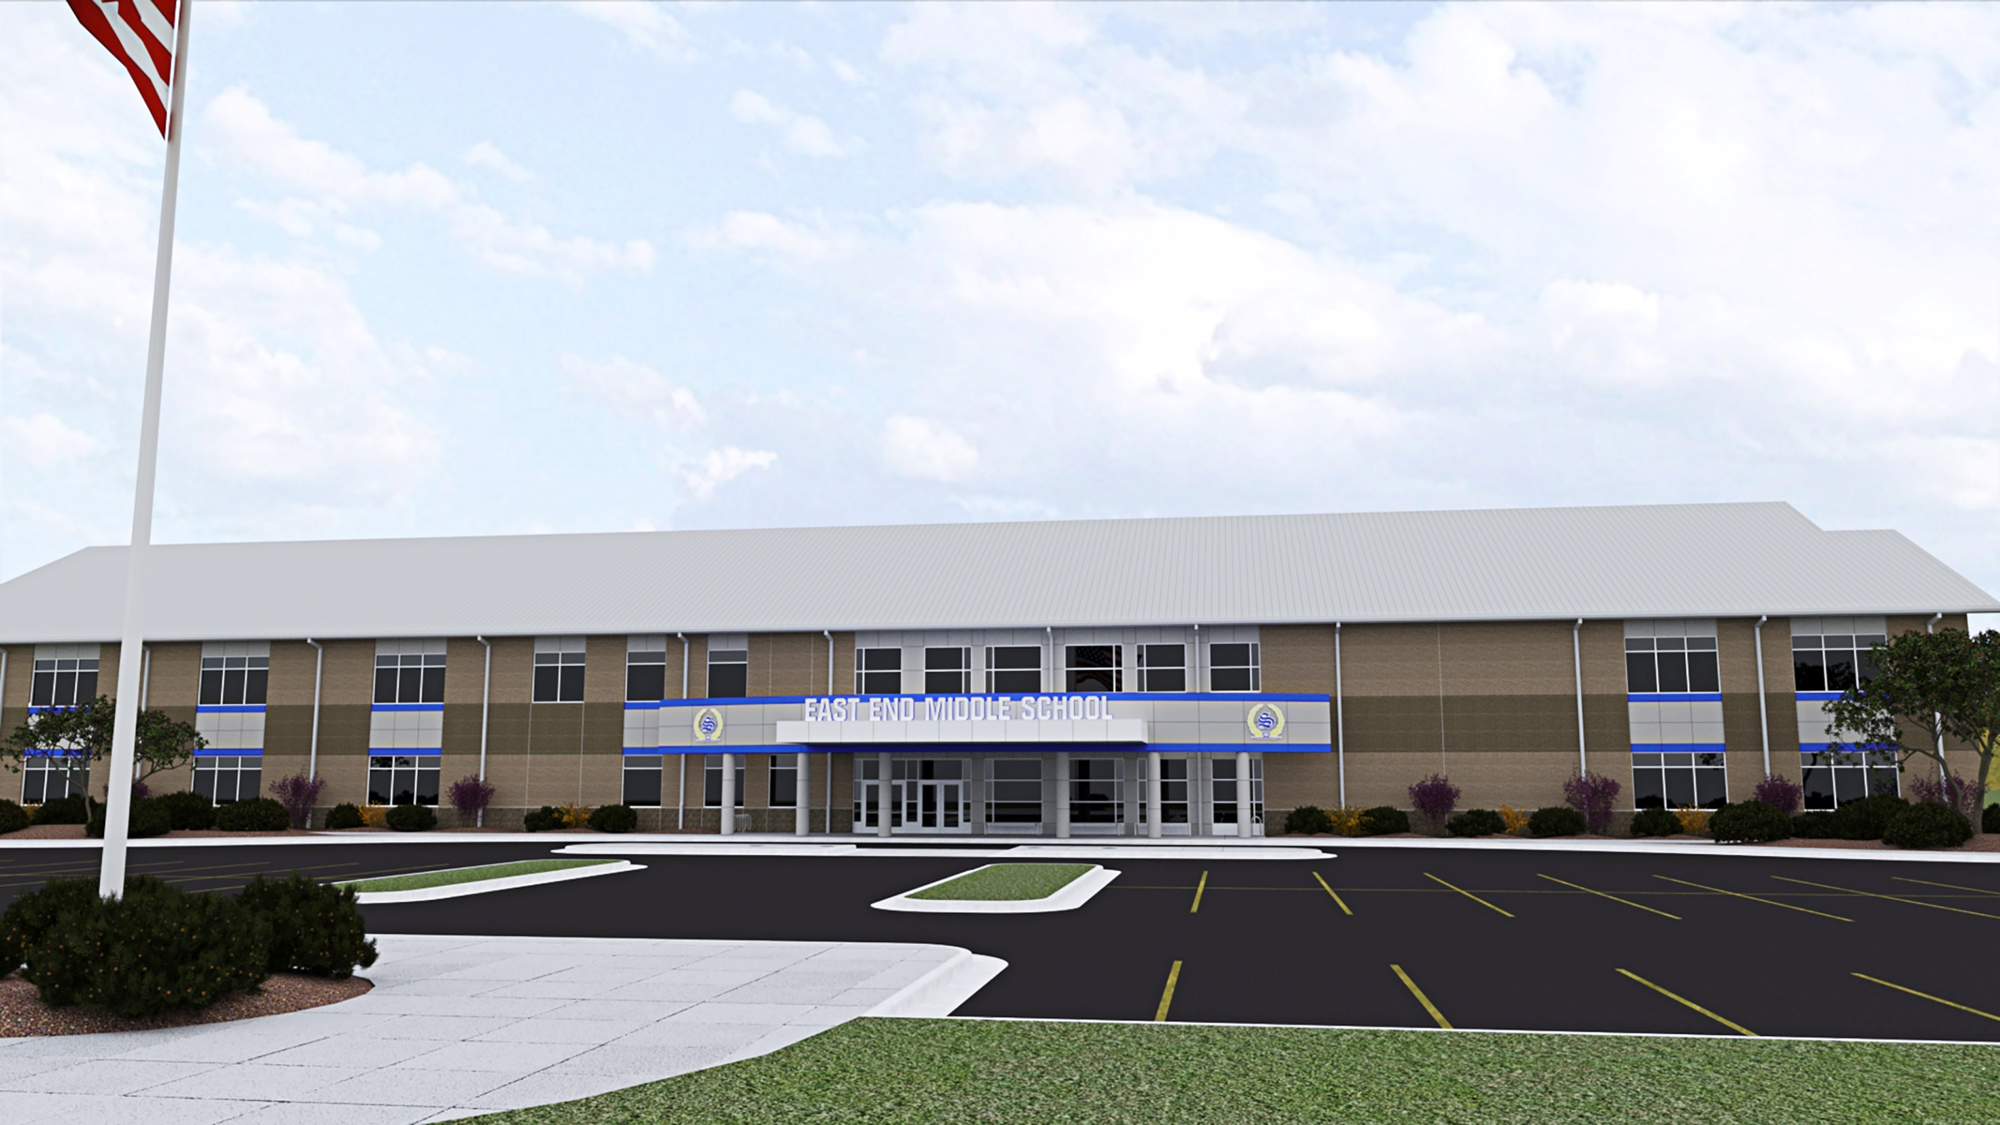 Rendering of the new East End Middle School to be built in 2019